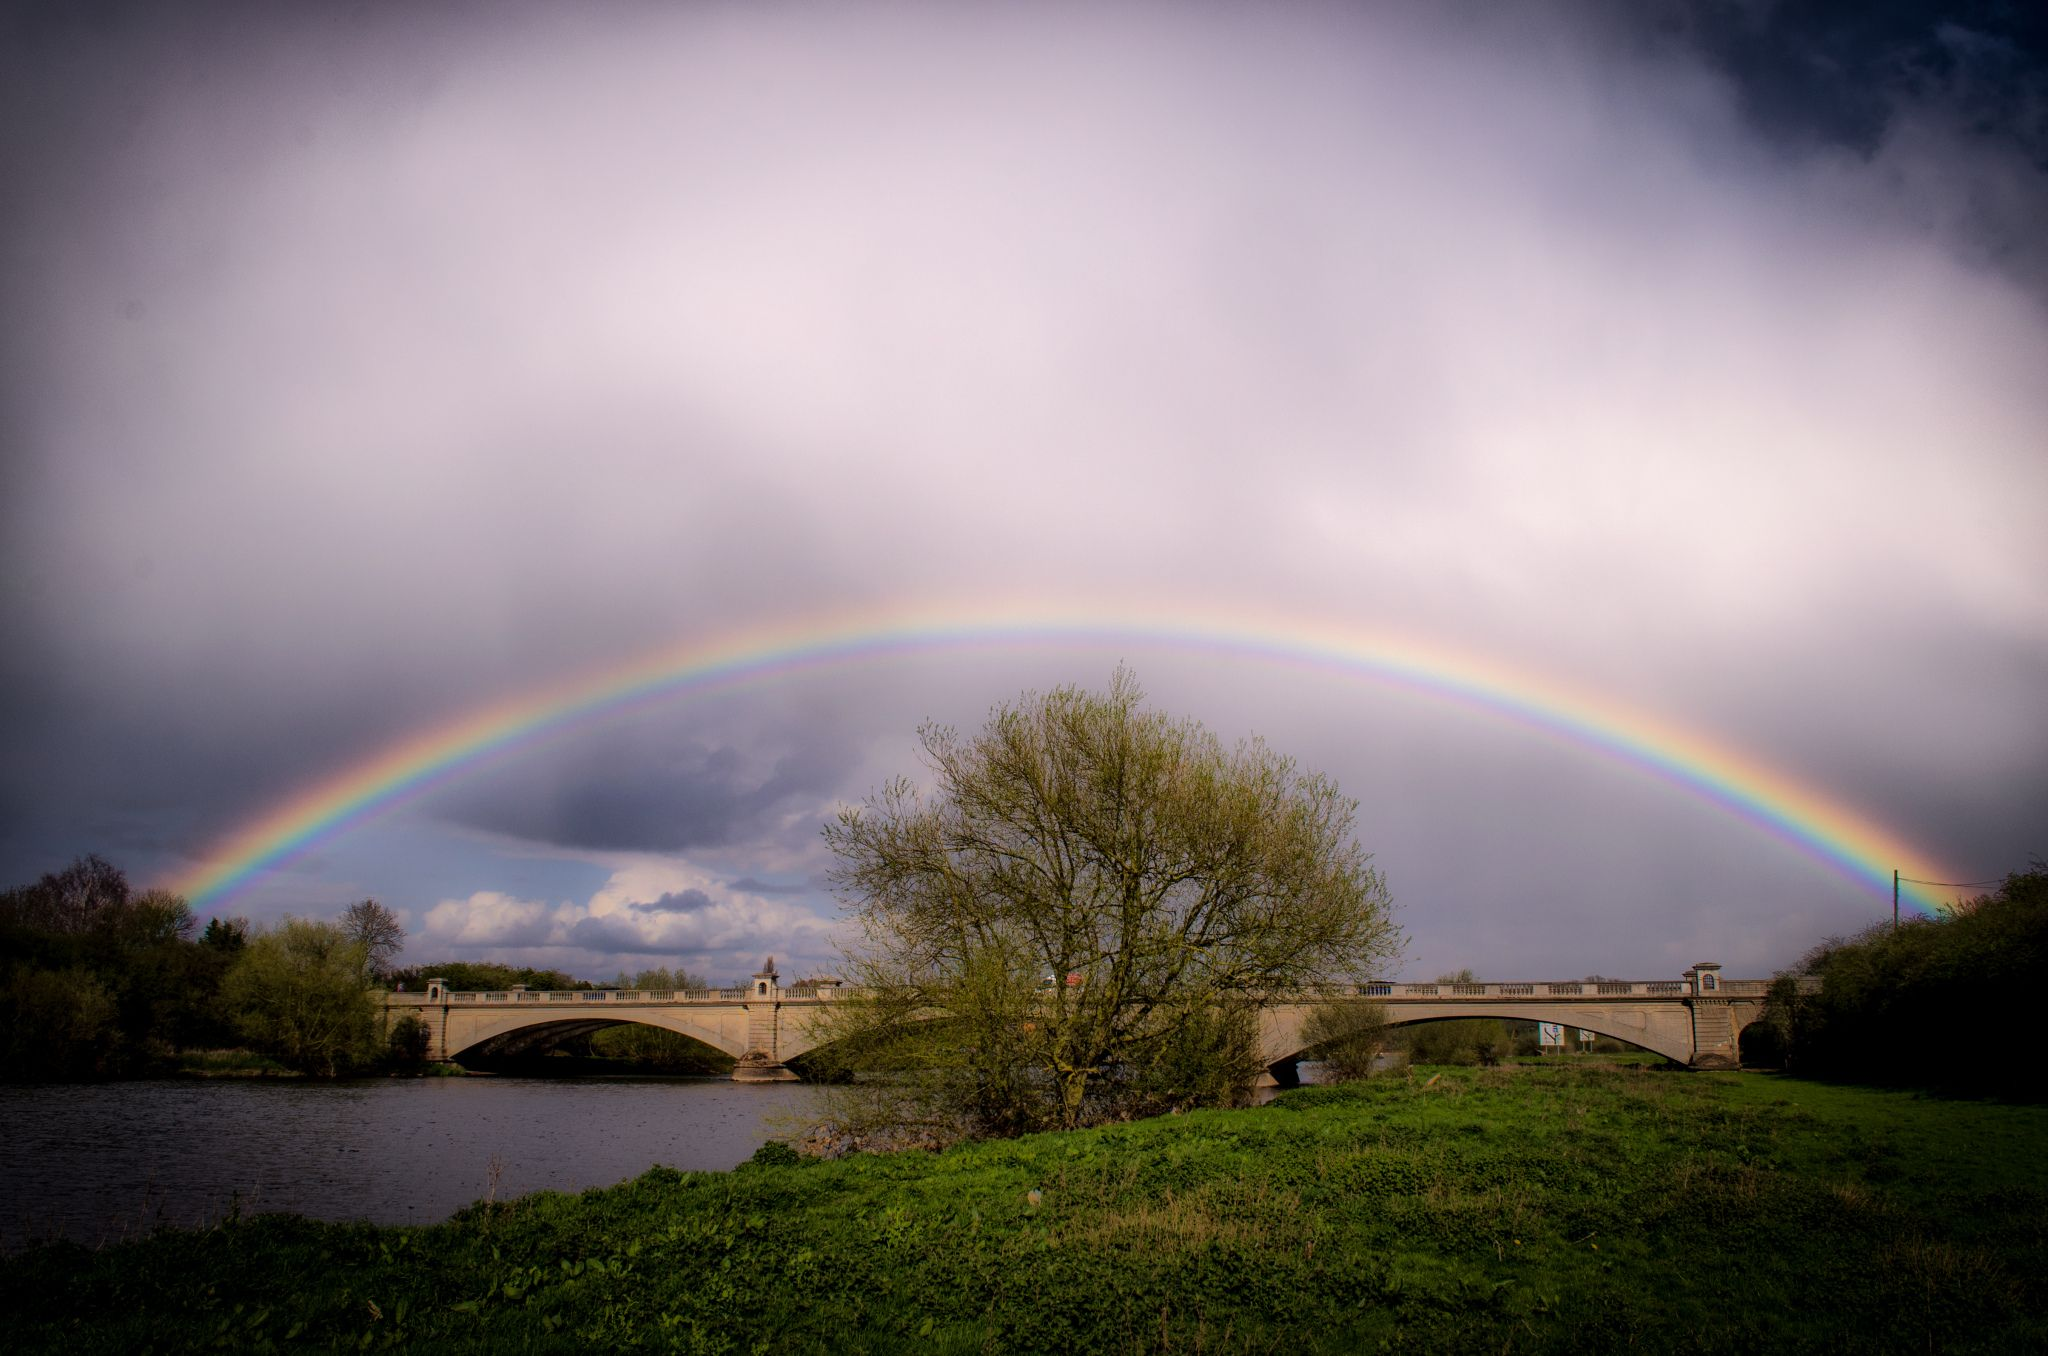 Rainbow | Flickr - Photo Sharing!